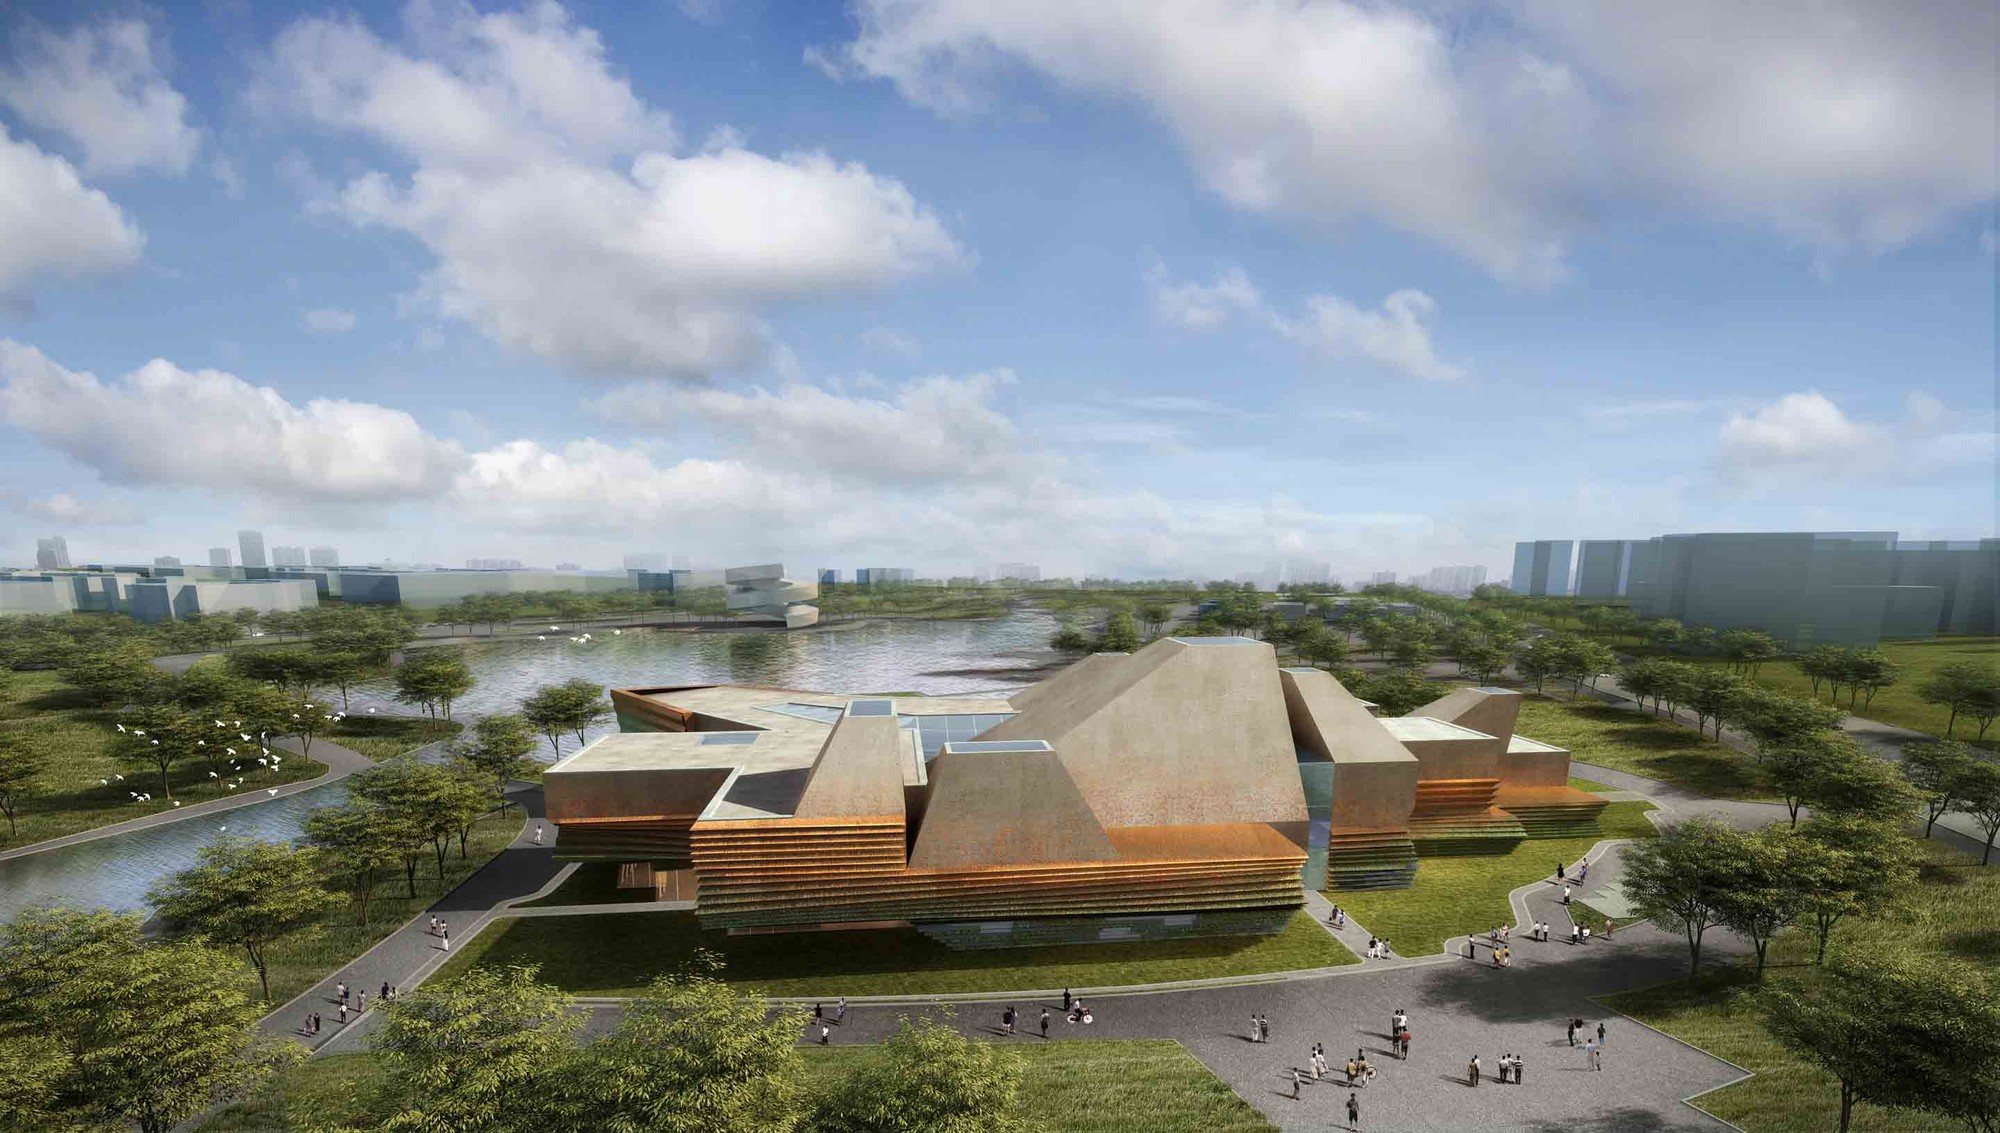 Tonglin City Planning Exhibition Center Winning Proposal / Waa, Courtesy of Waa